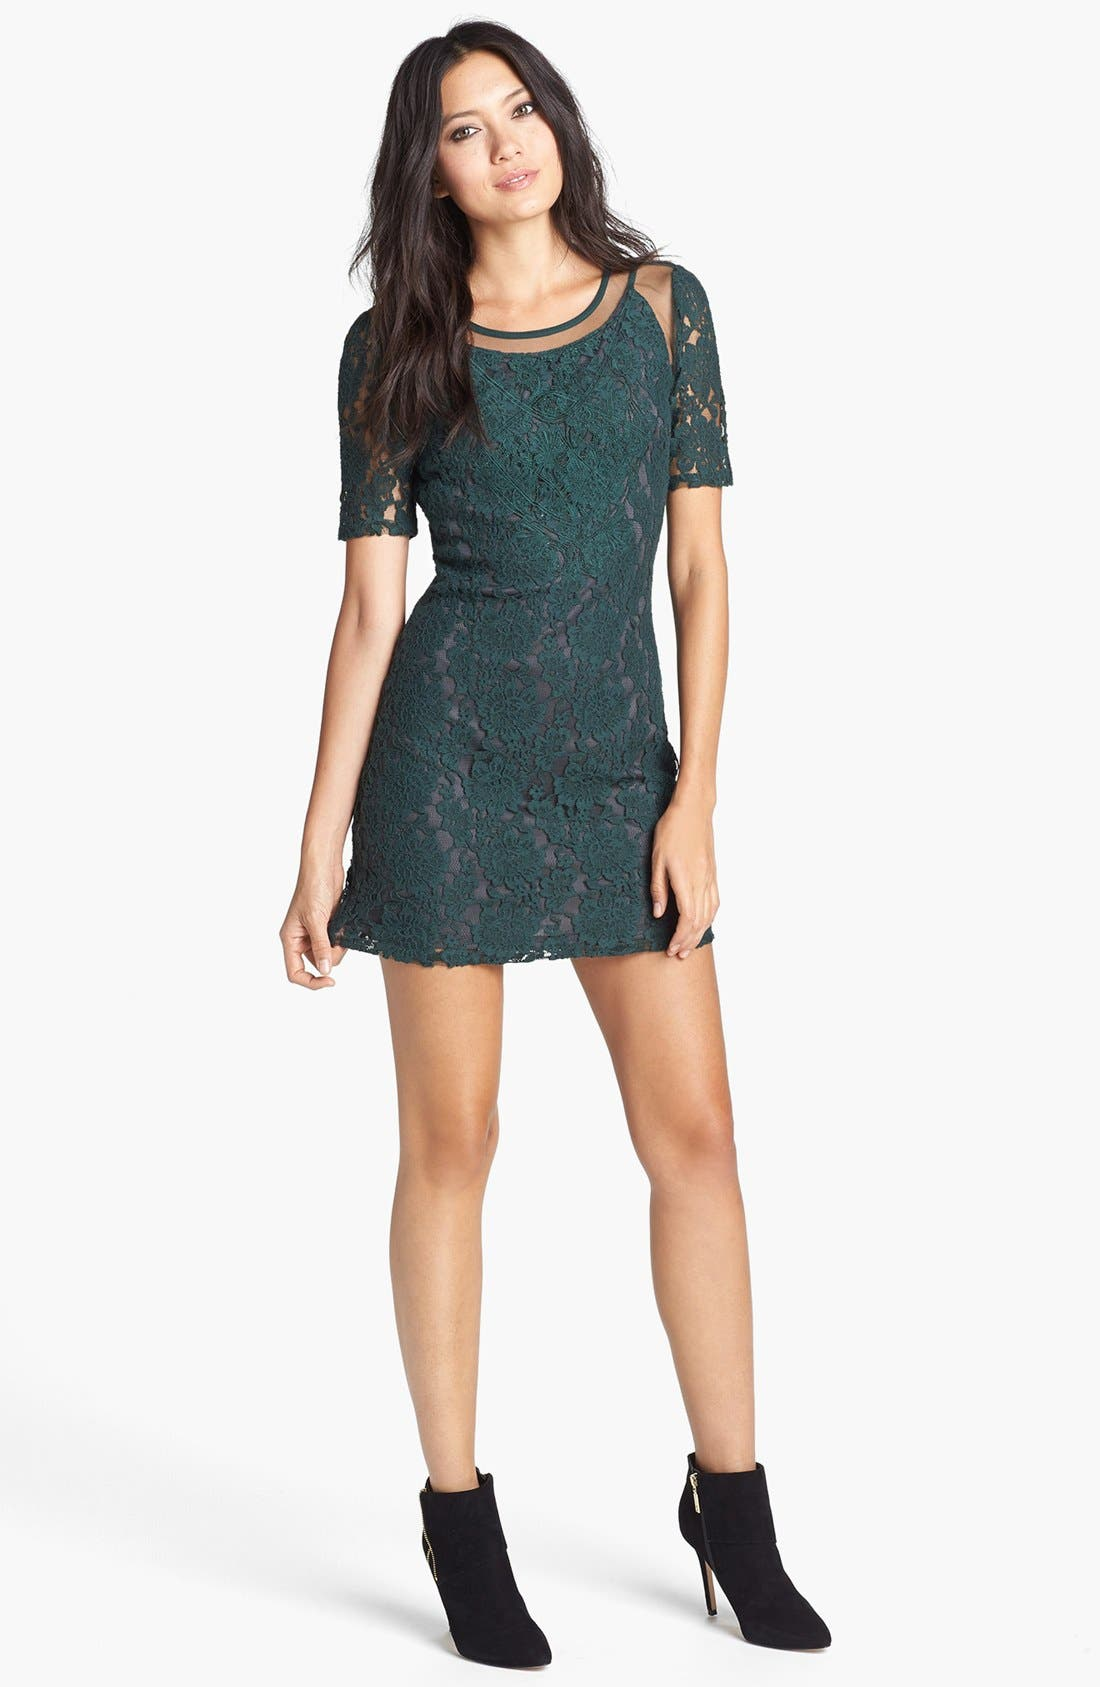 Alternate Image 1 Selected - ASTR Mesh Inset Lace Dress